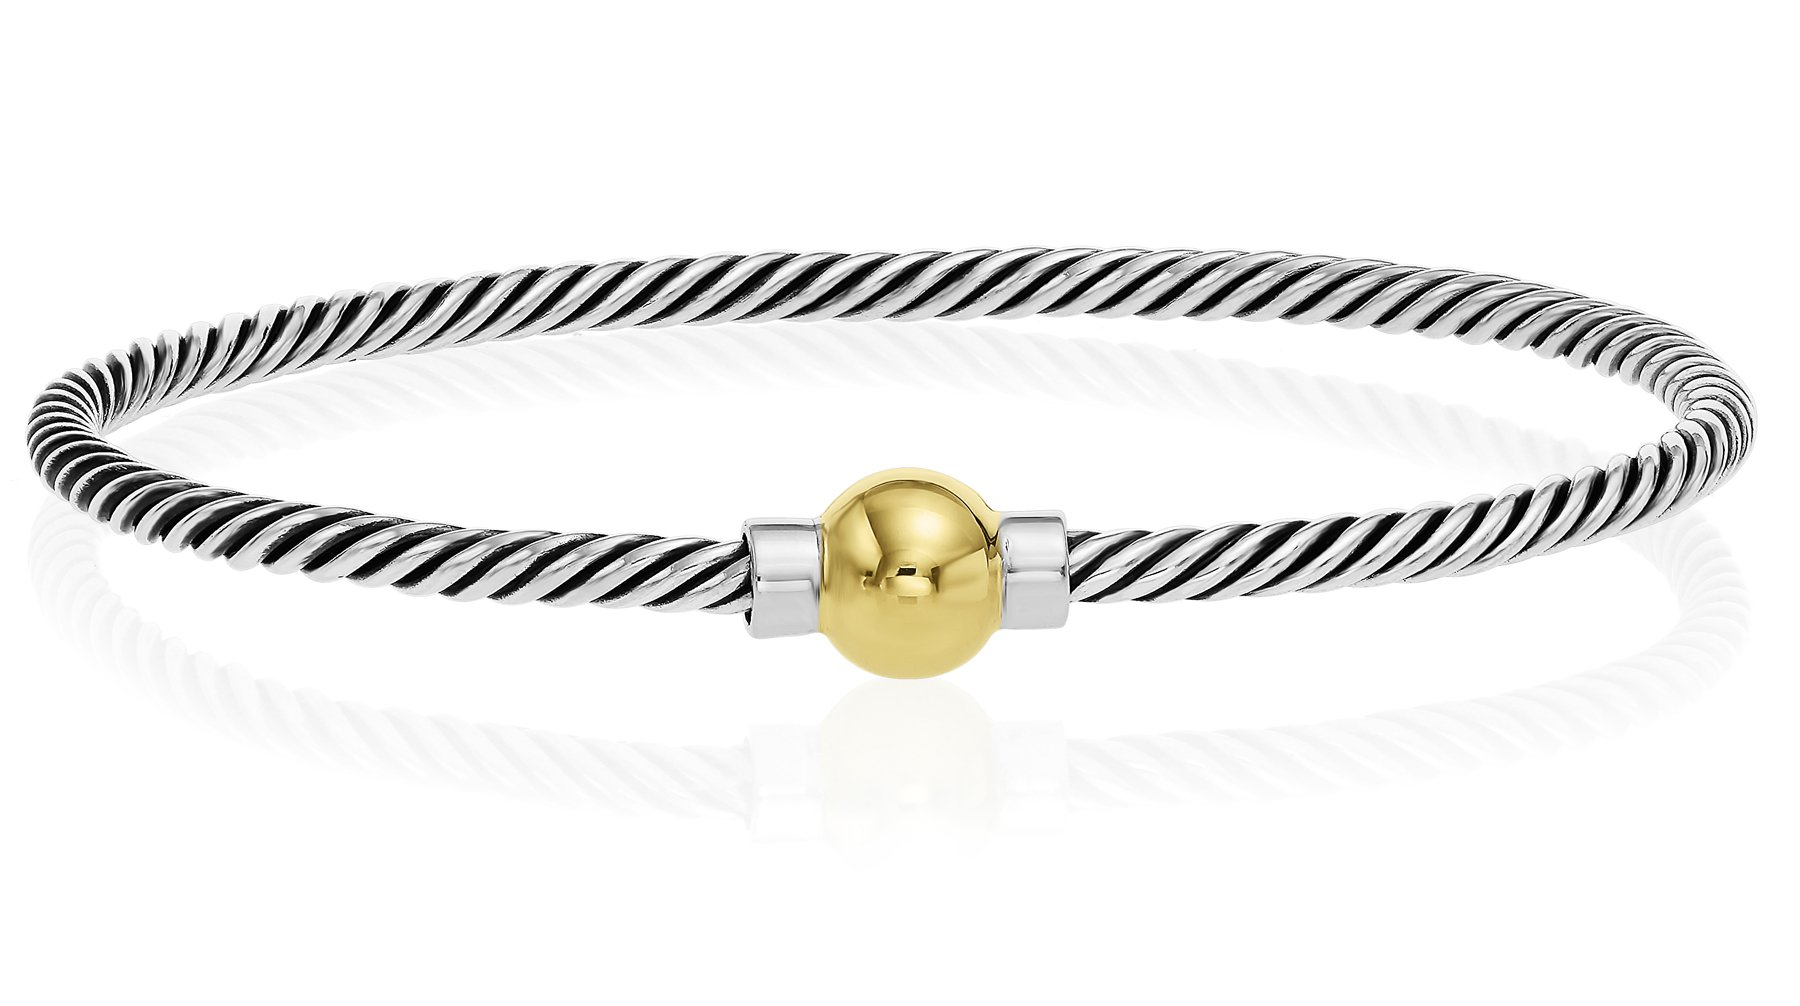 Unique Royal Jewelry 925 Sterling Silver, 14k Solid Gold Ball Screw Twisted Bangle Bracelet with Black Rhodium (Size 7)